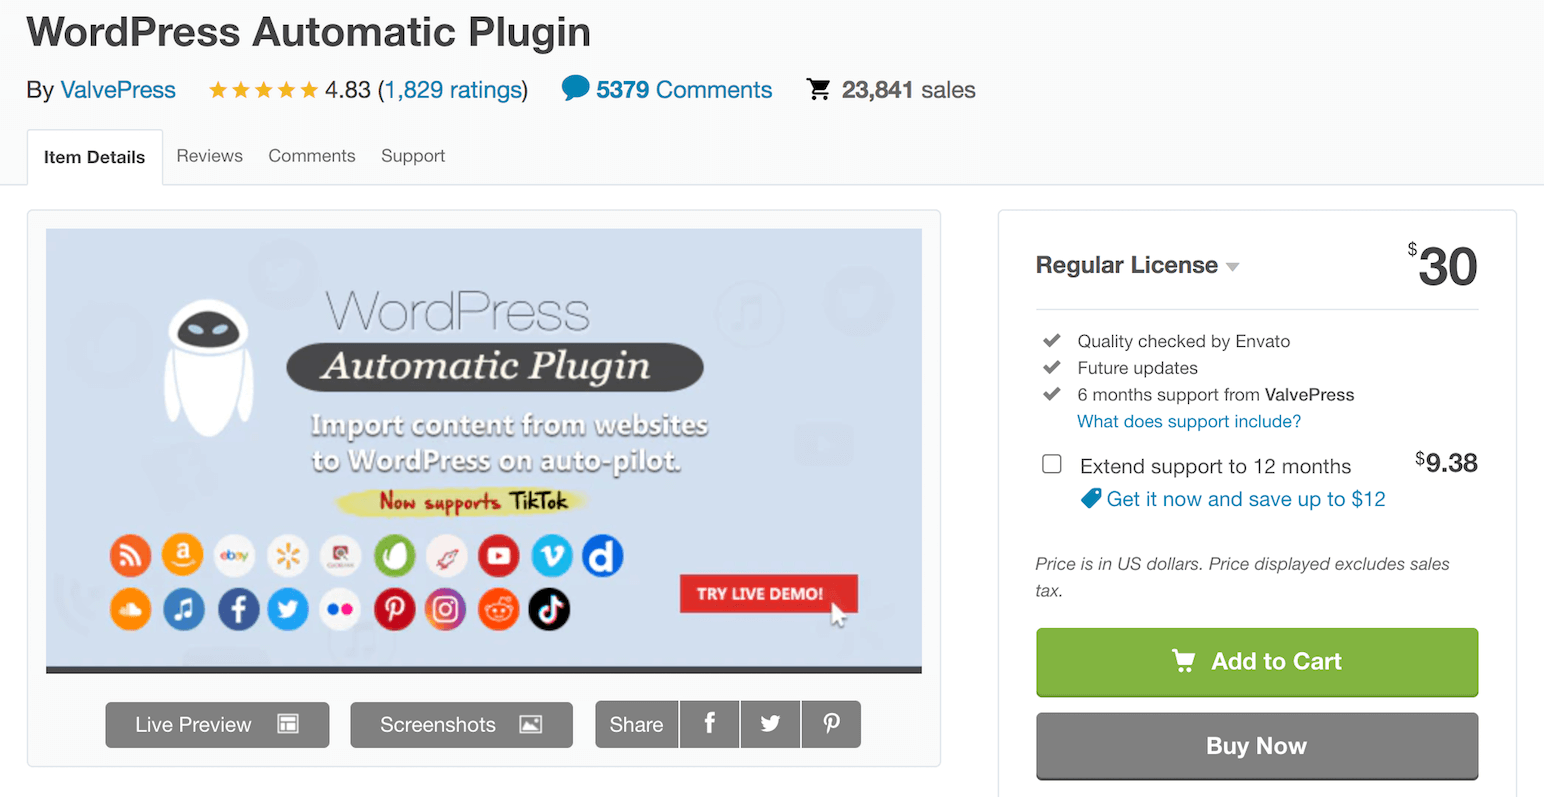 WordPress Automatic Plugin used in auction site